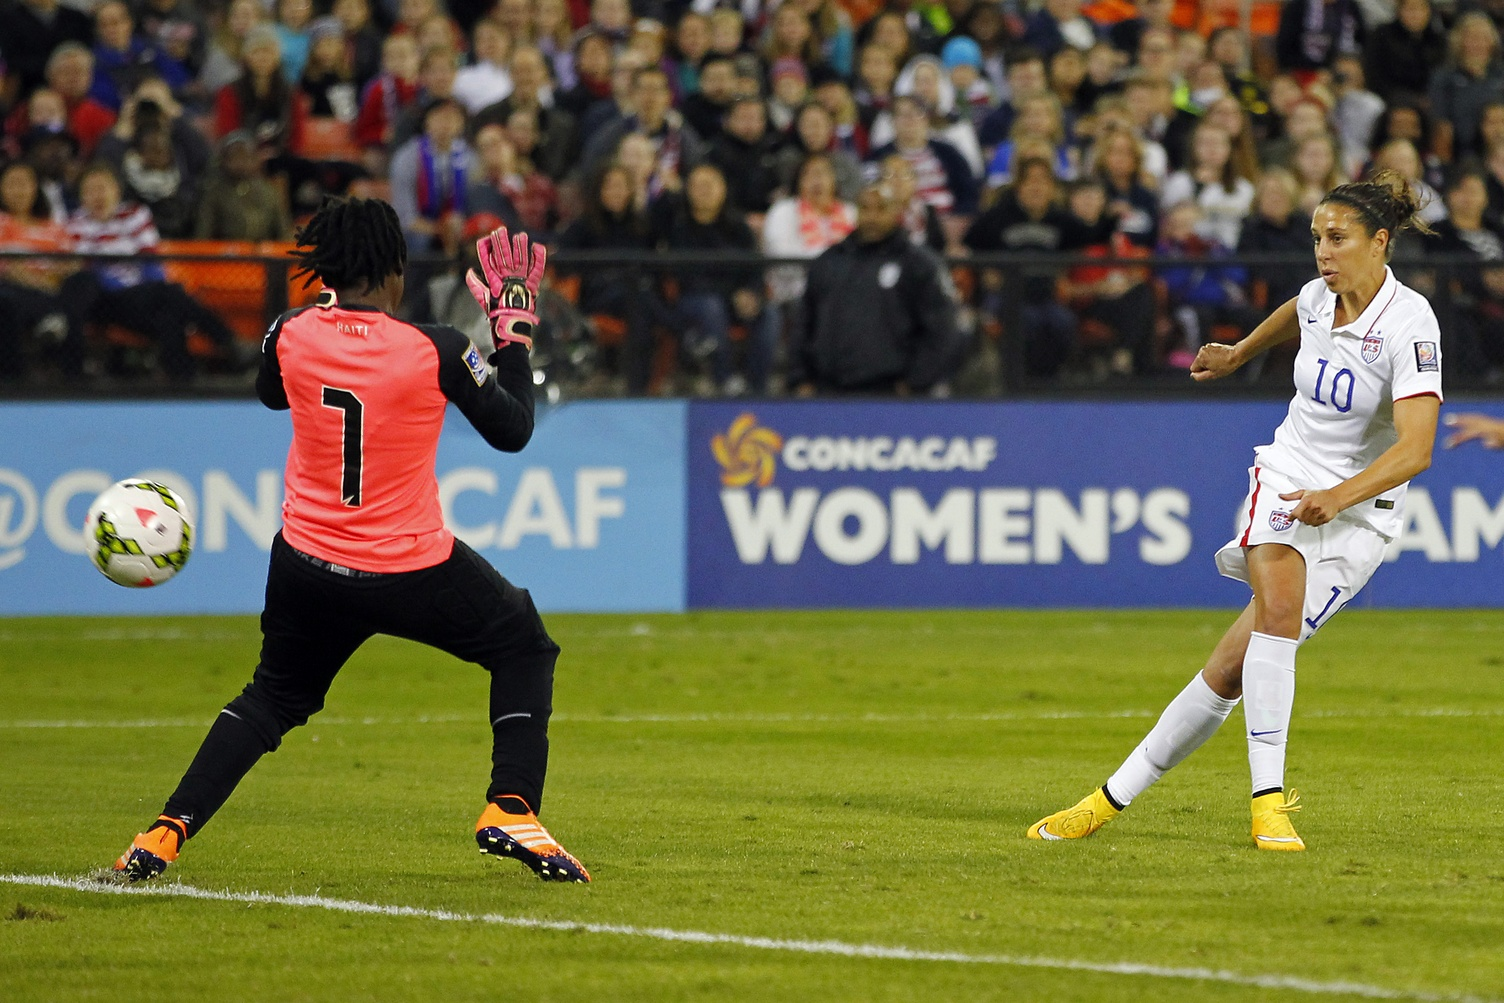 Carli Lloyd opened the scoring on Monday as the USWNT routed Haiti. (USA Today Images)